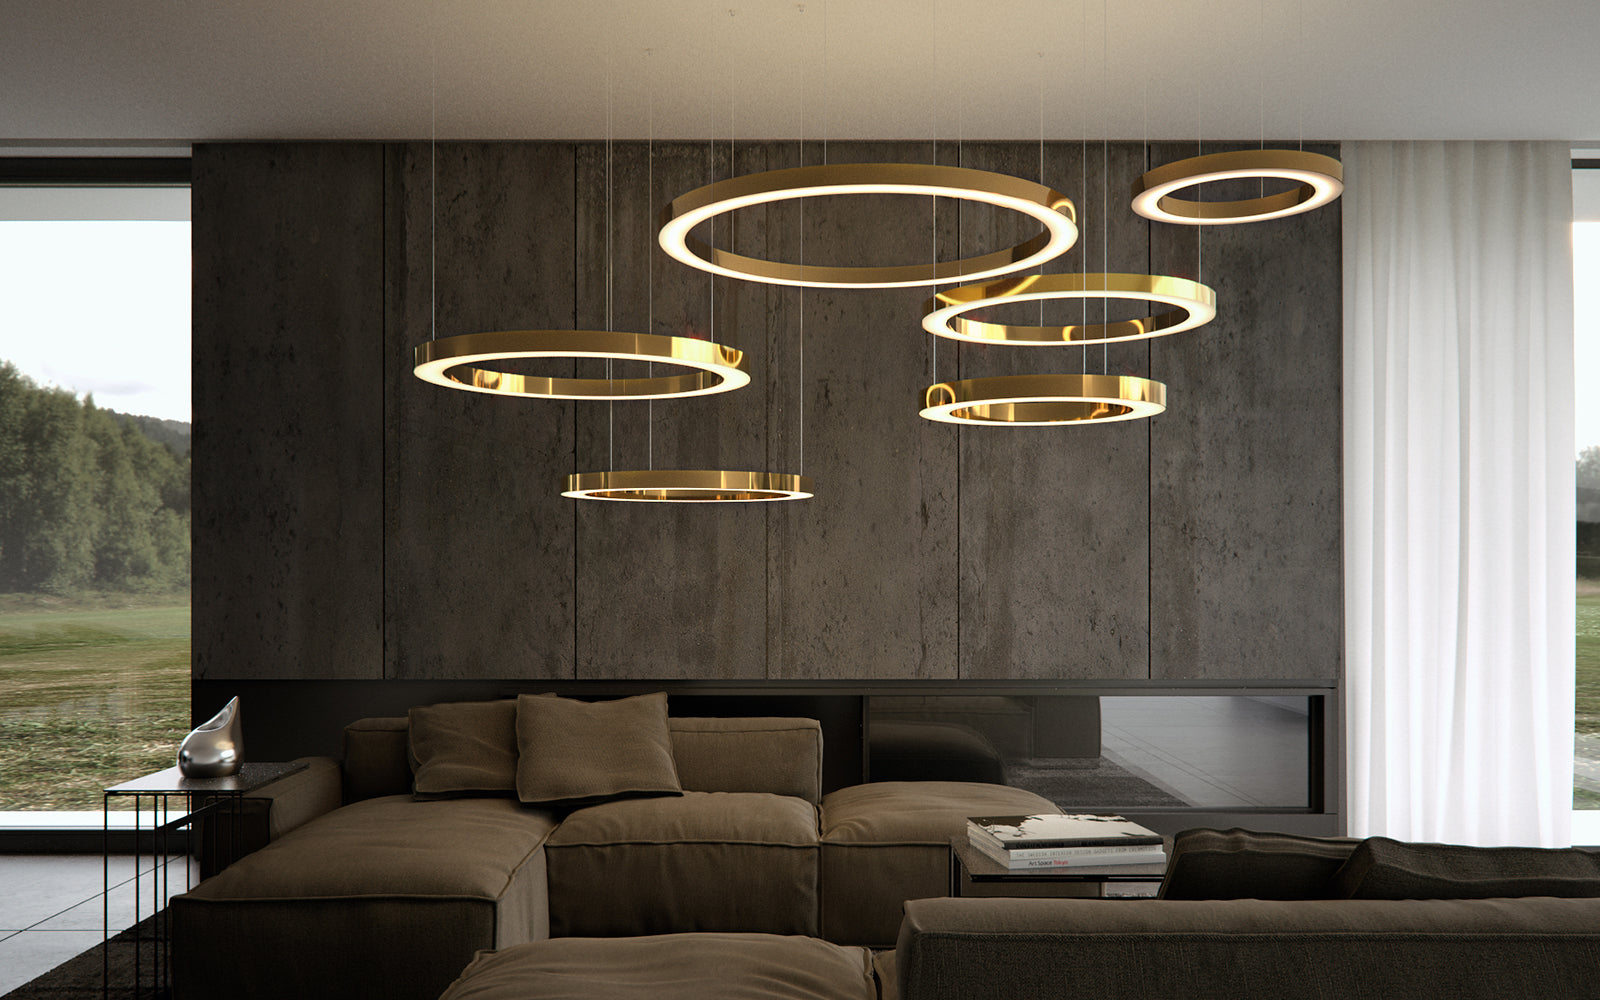 Mahlu By Cameron Design House, Circular Led Lighting, Luminaire, Henge Light